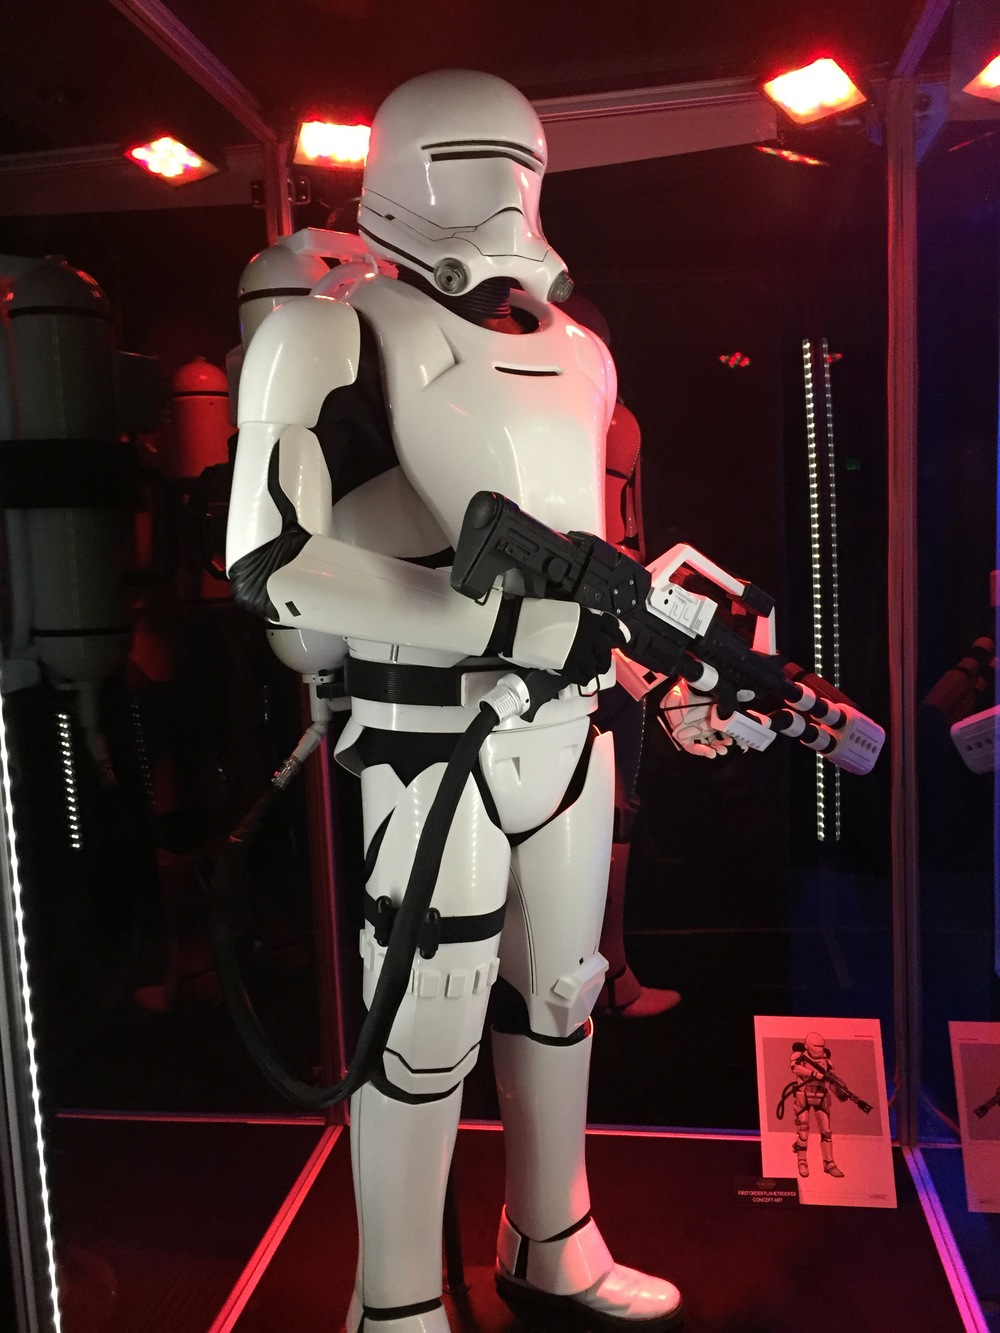 Force Awakens Exhibit  - 68.jpg